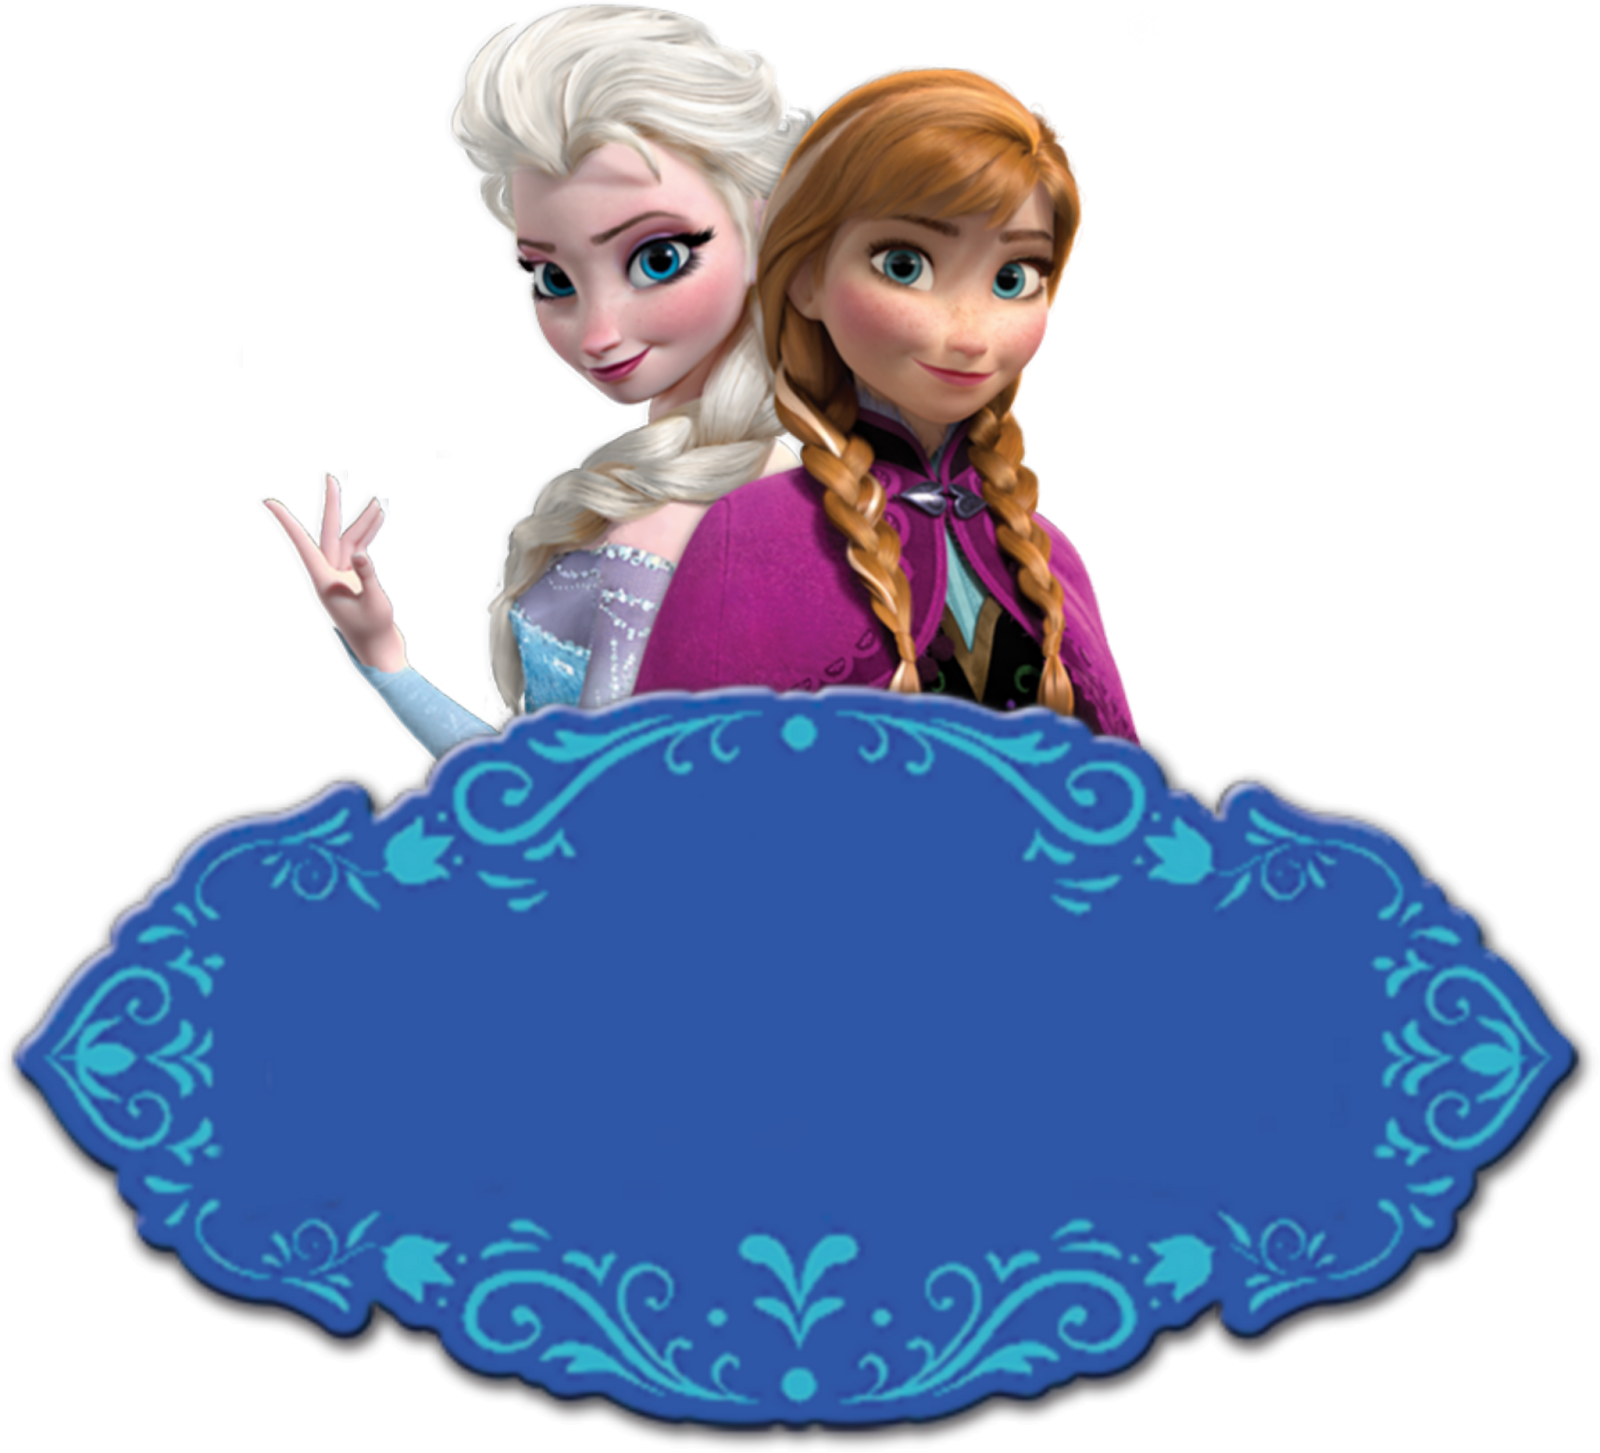 Frozen: Free Printable Kit with Fucsia Border. | Oh My Fiesta! in ...